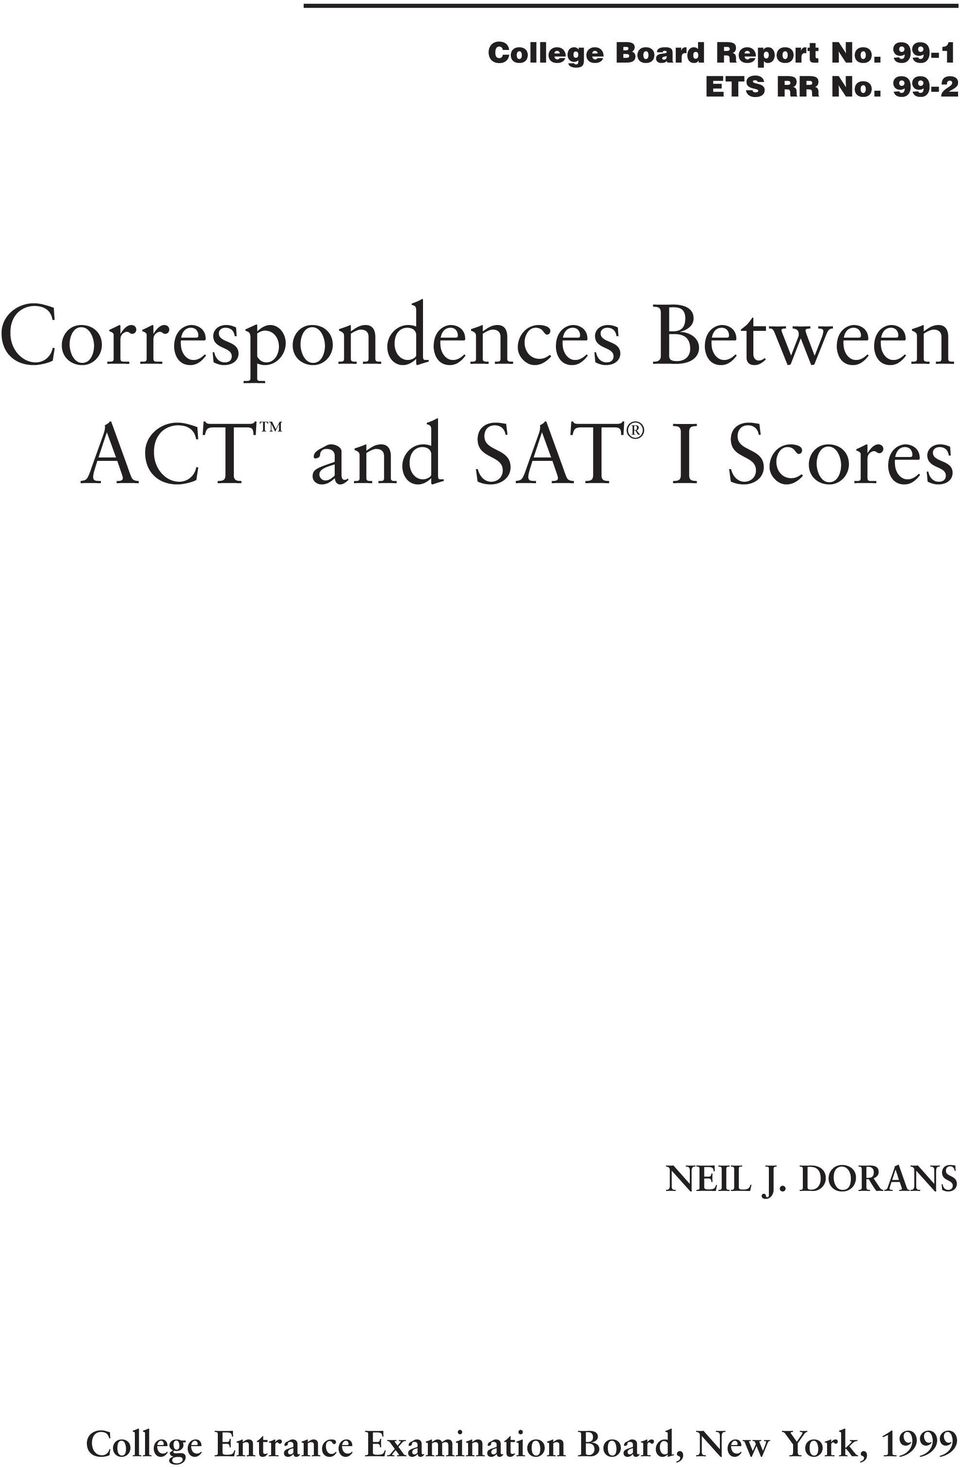 99-2 Correspondences Between ACT and